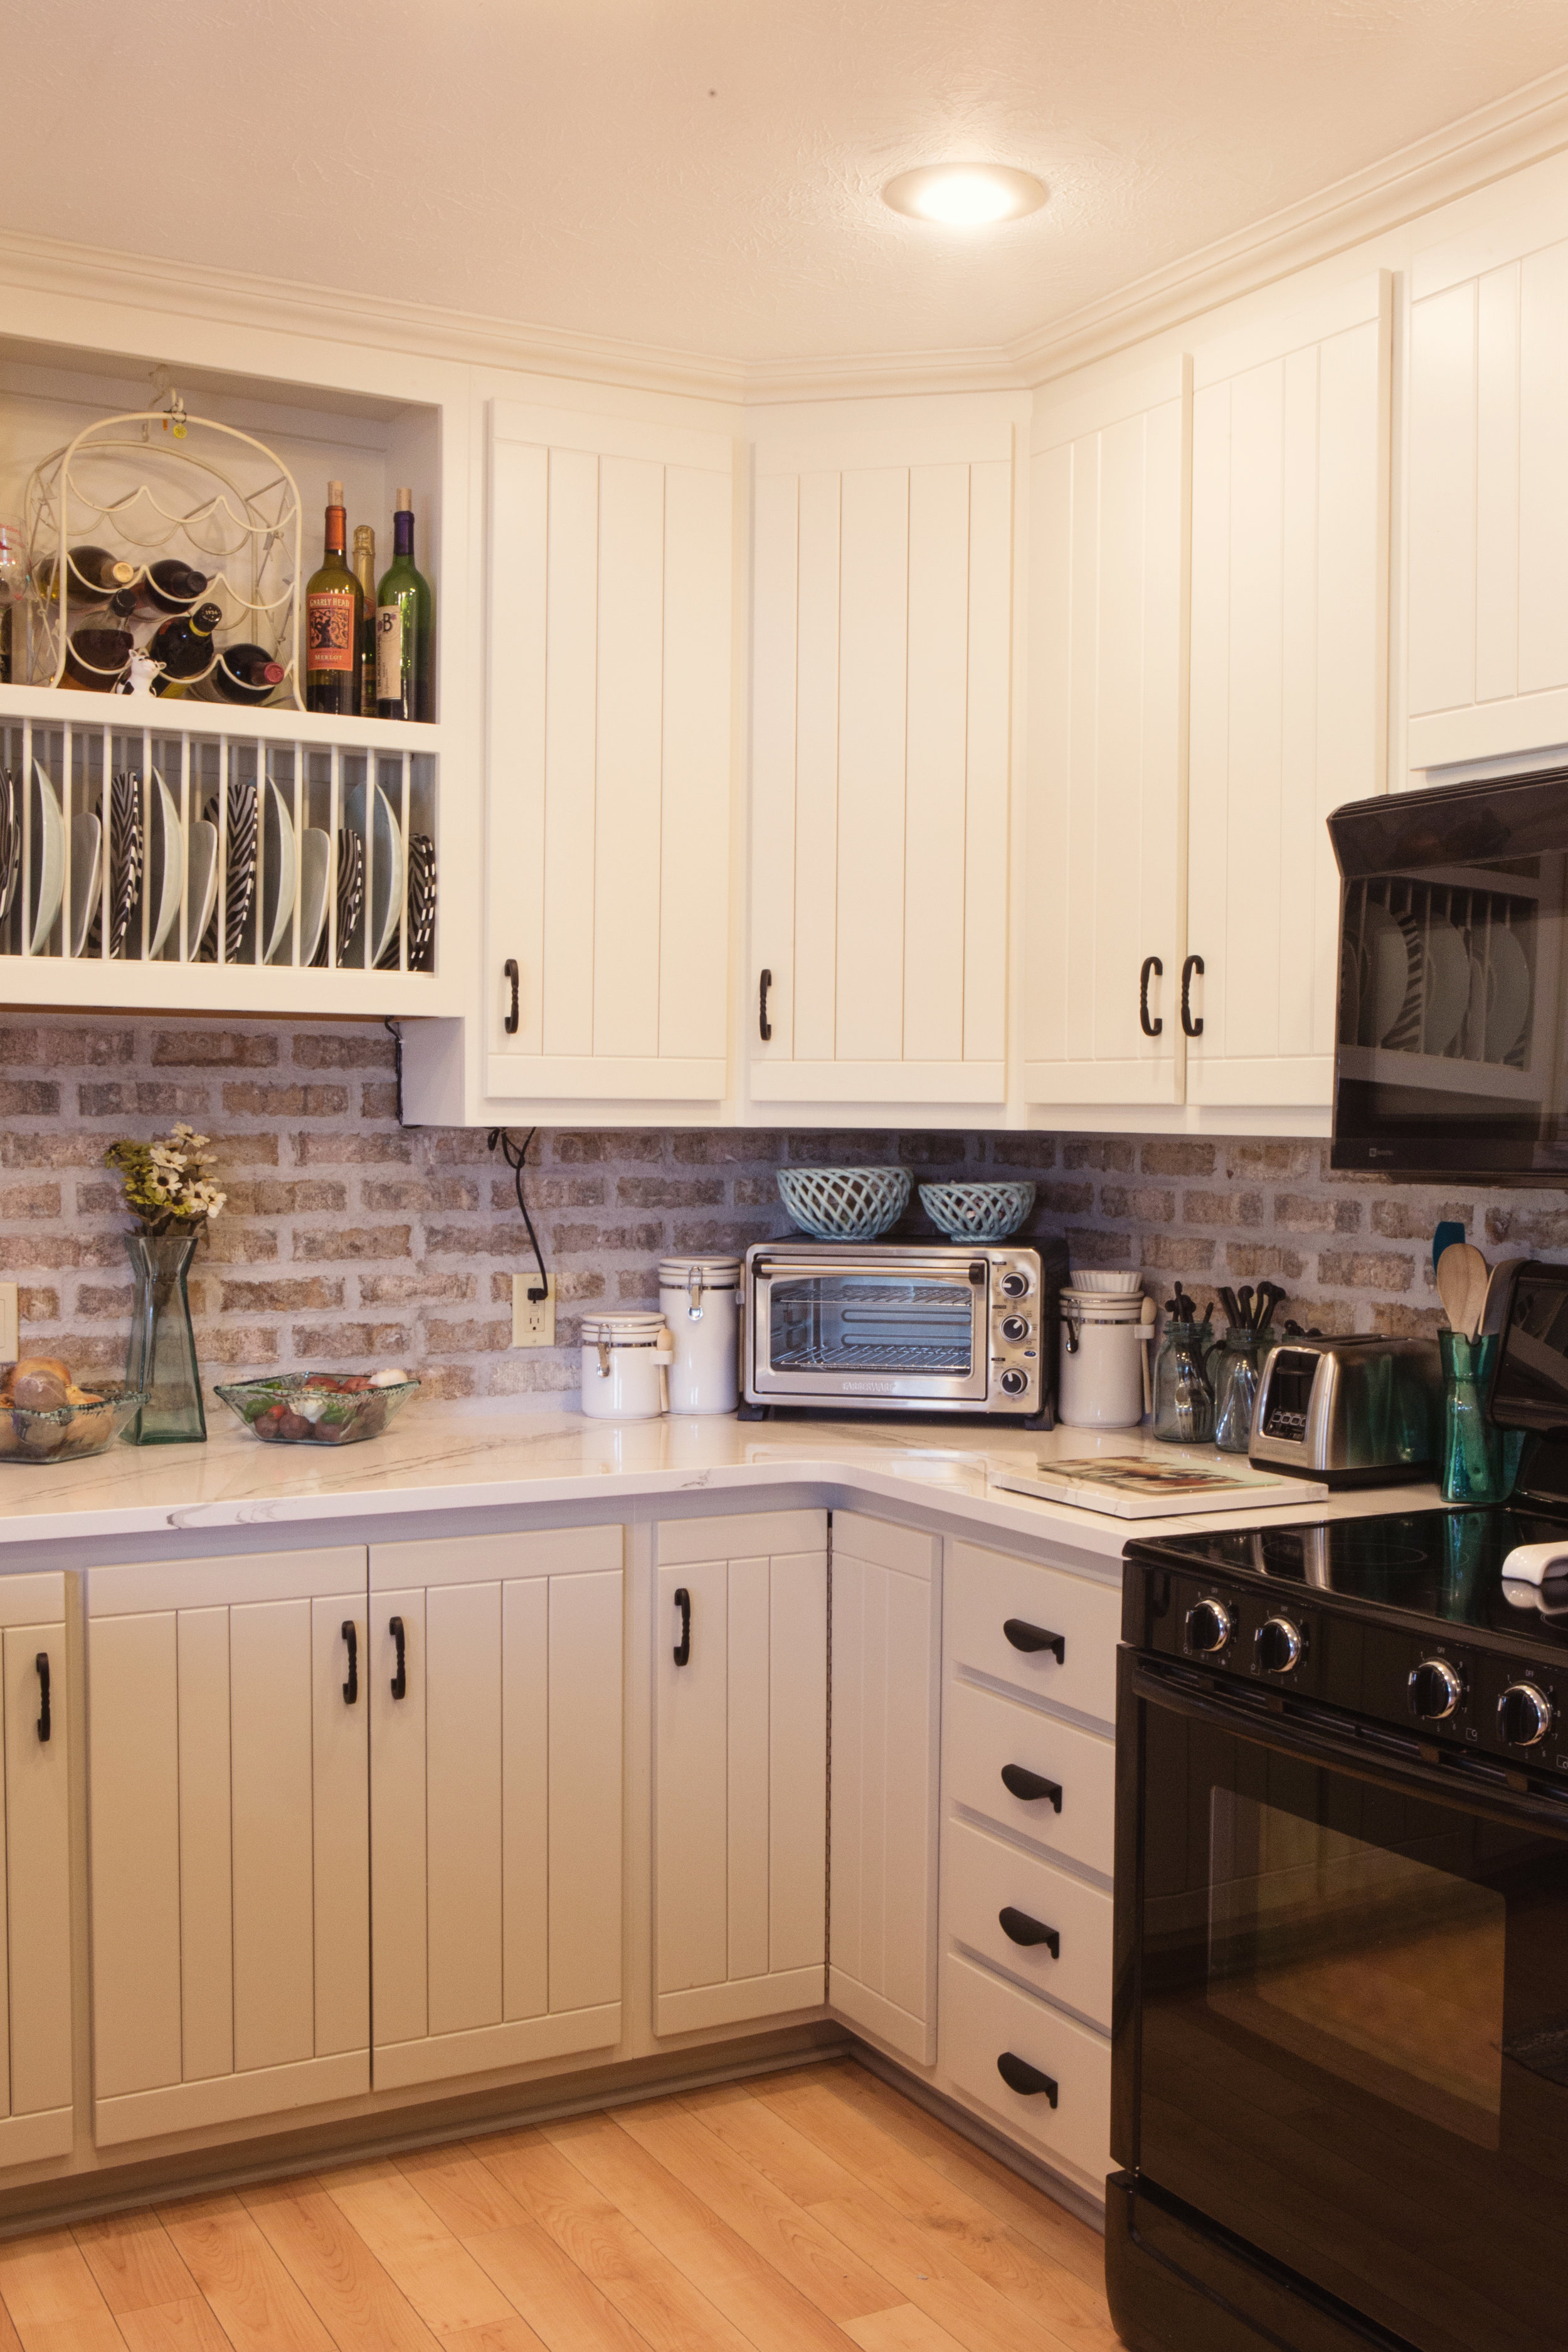 color-theory-painting-cabinets-5.jpg